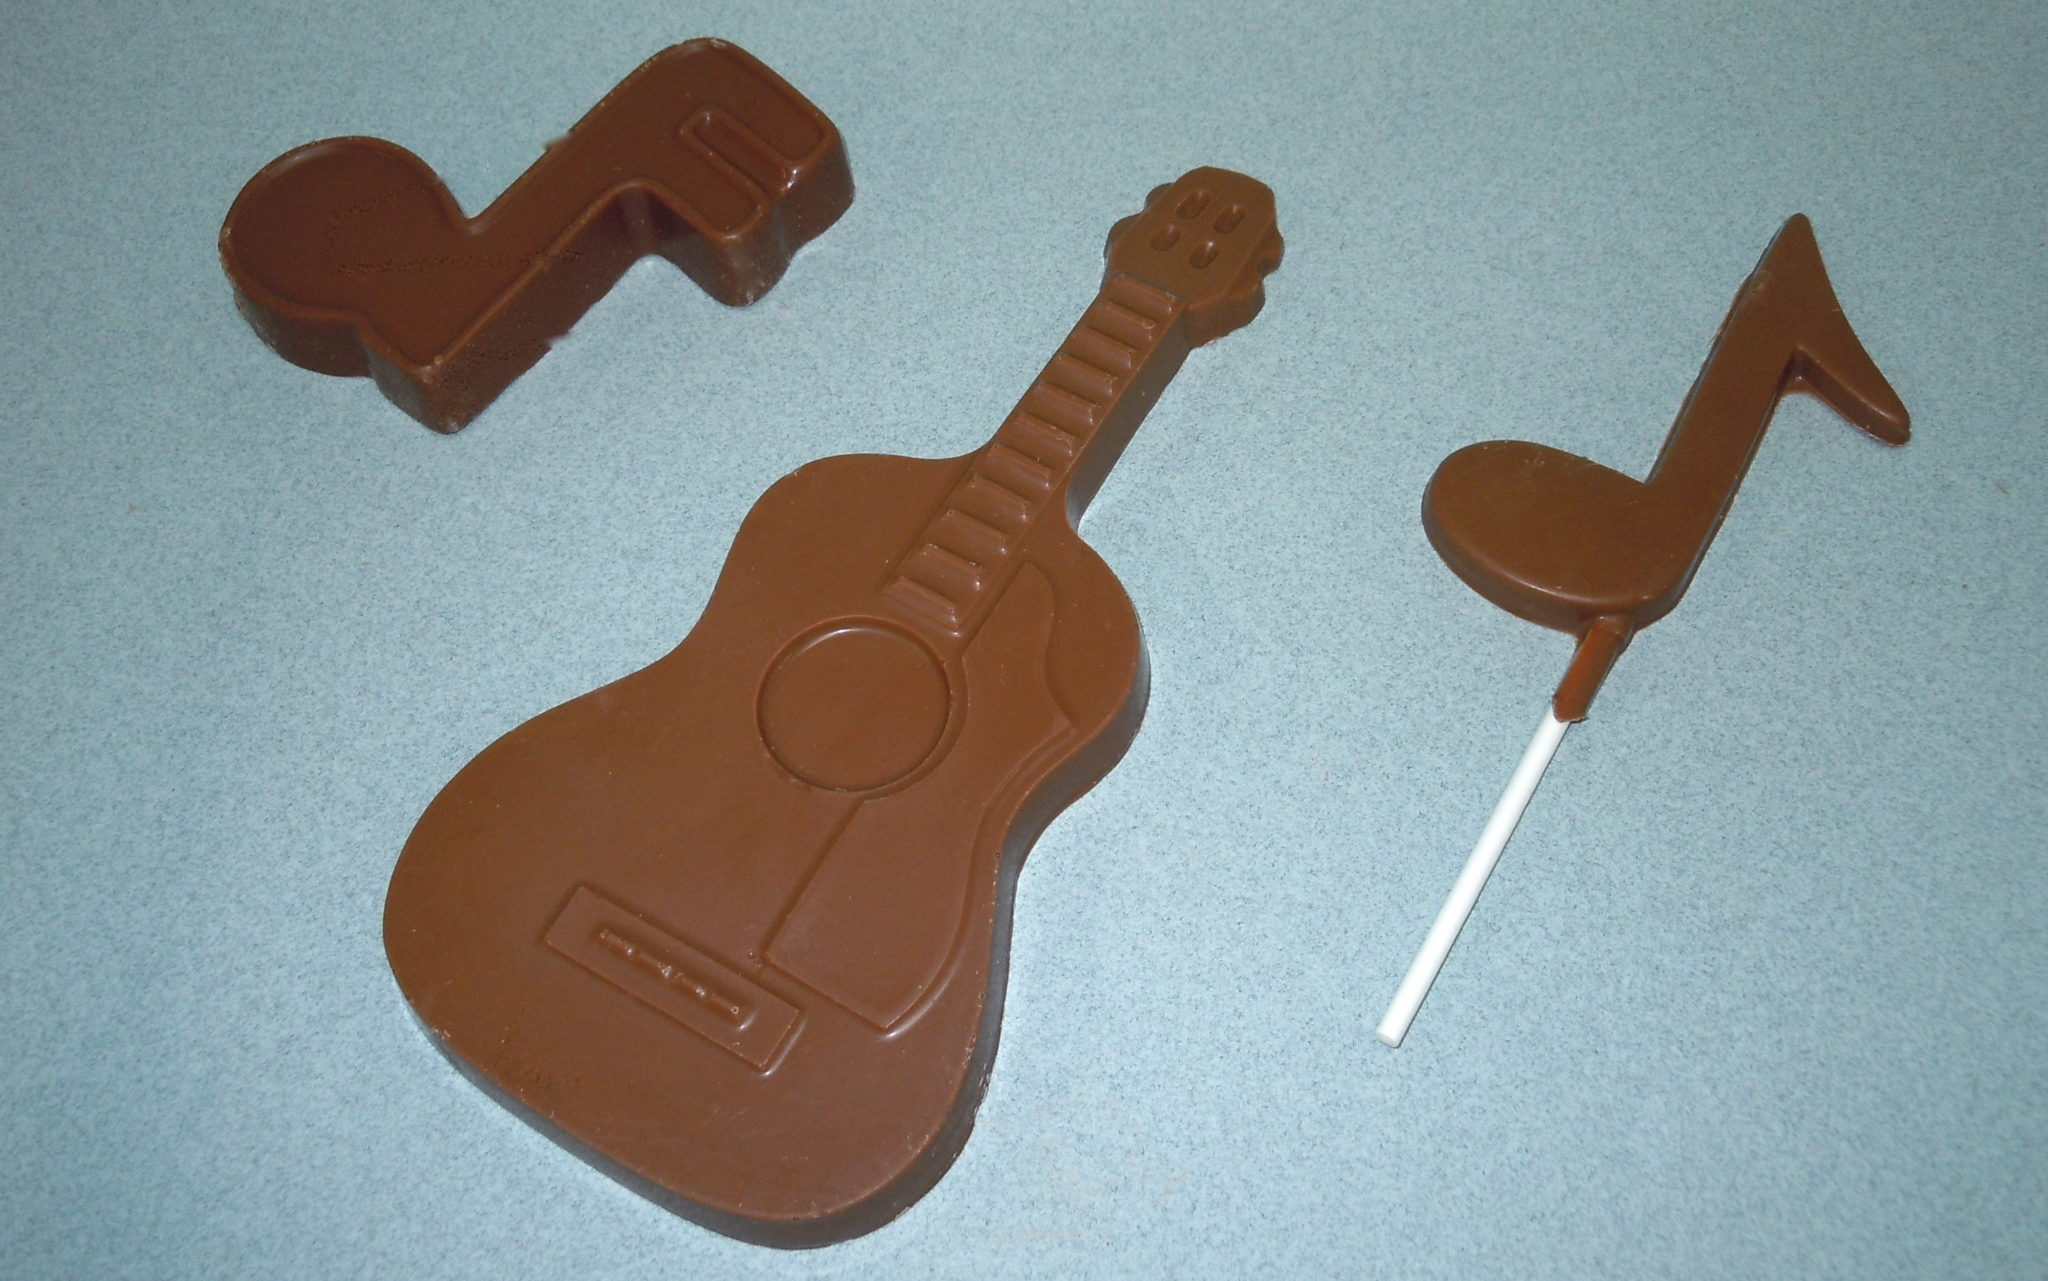 Solid Chocolate guitar, Music note & music lollipop